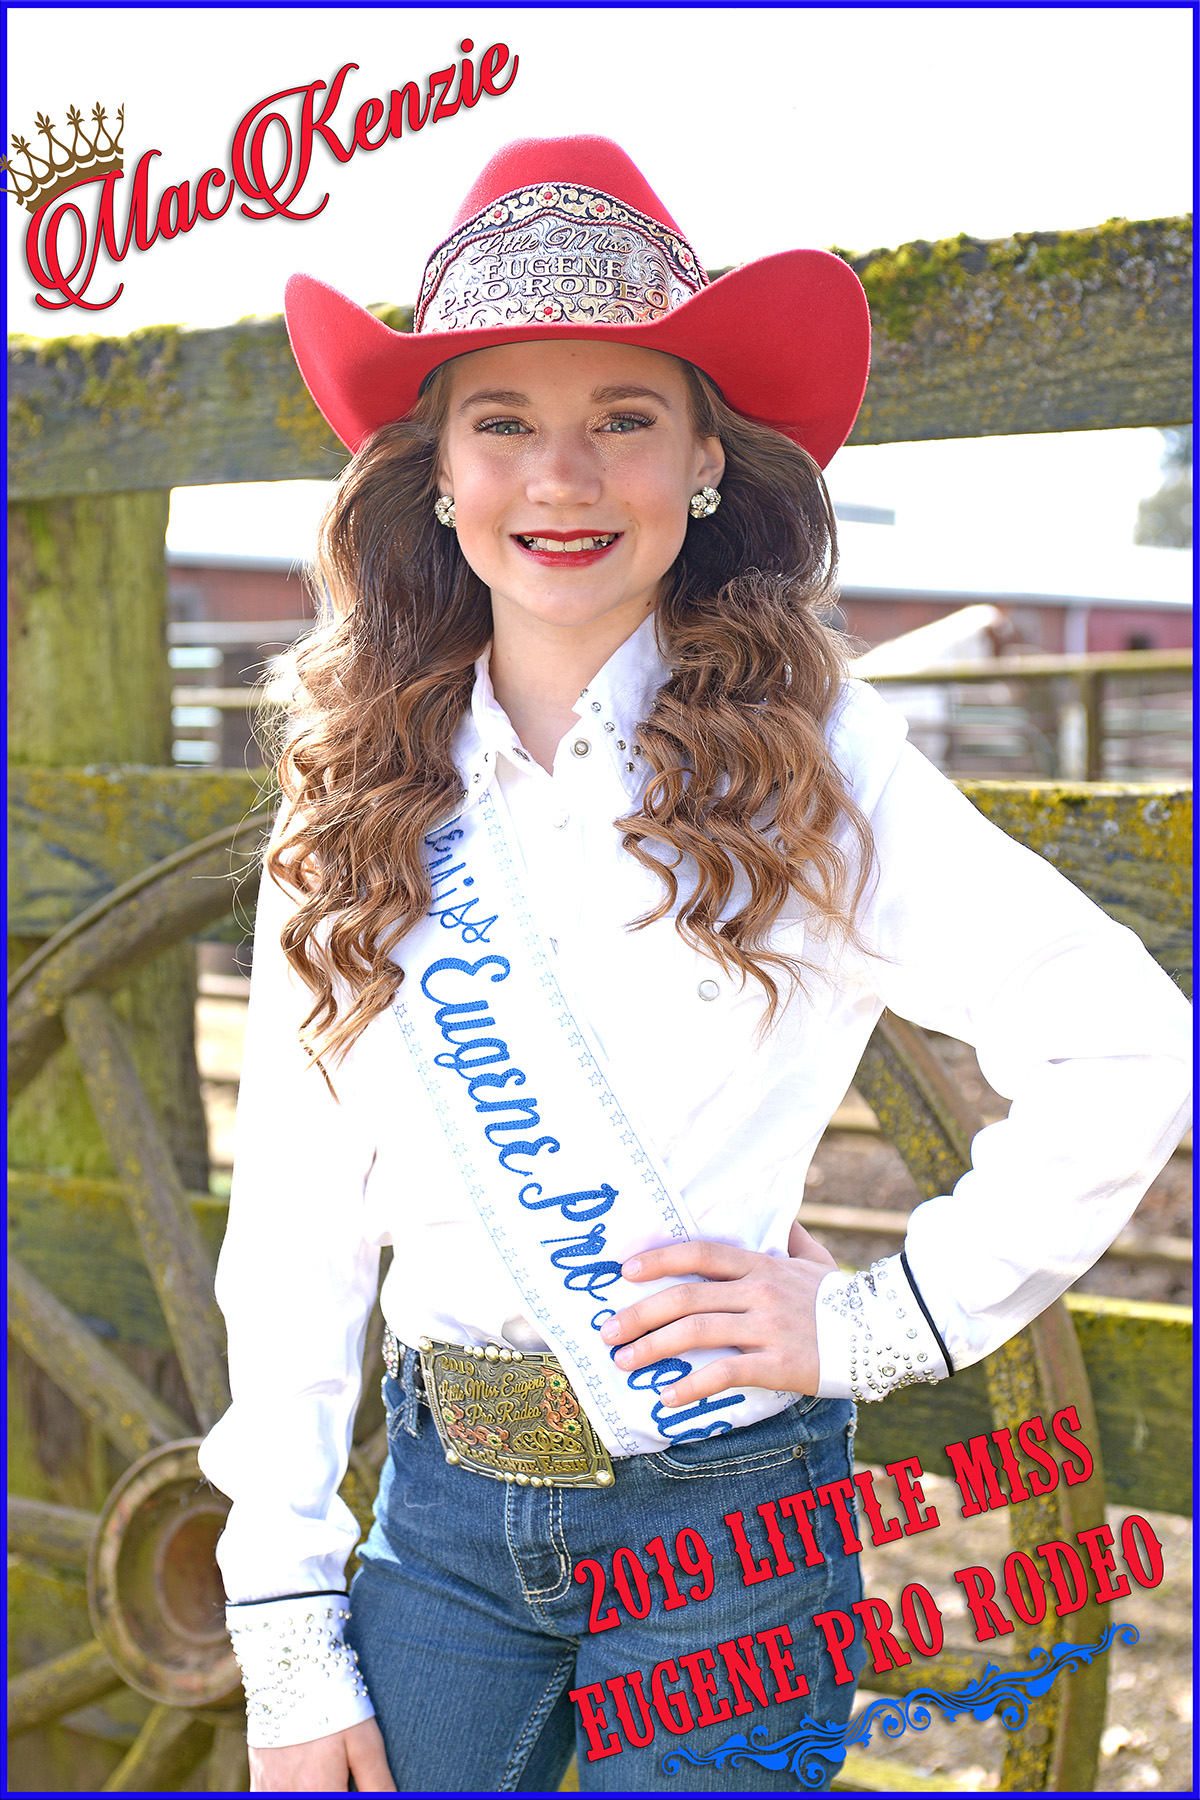 Little Miss Eugene - - MacKenzie Essin is the 2019 Little Miss Eugene Pro Rodeo. MacKenzie is a 12 year old that loves riding and everything about horses. She has been focused on horsemanship, public speaking, and rodeo skills all while working hard as a straight A middle school student. When she isn't dancing for the Sheldon Colleens or playing competitive soccer she is at the Rolling H Ranch helping her aunt and uncle with the horses. She wants to inspire girls and boys to chase their dreams and overcome adversity and is excited to be representing the Eugene Pro Rodeo